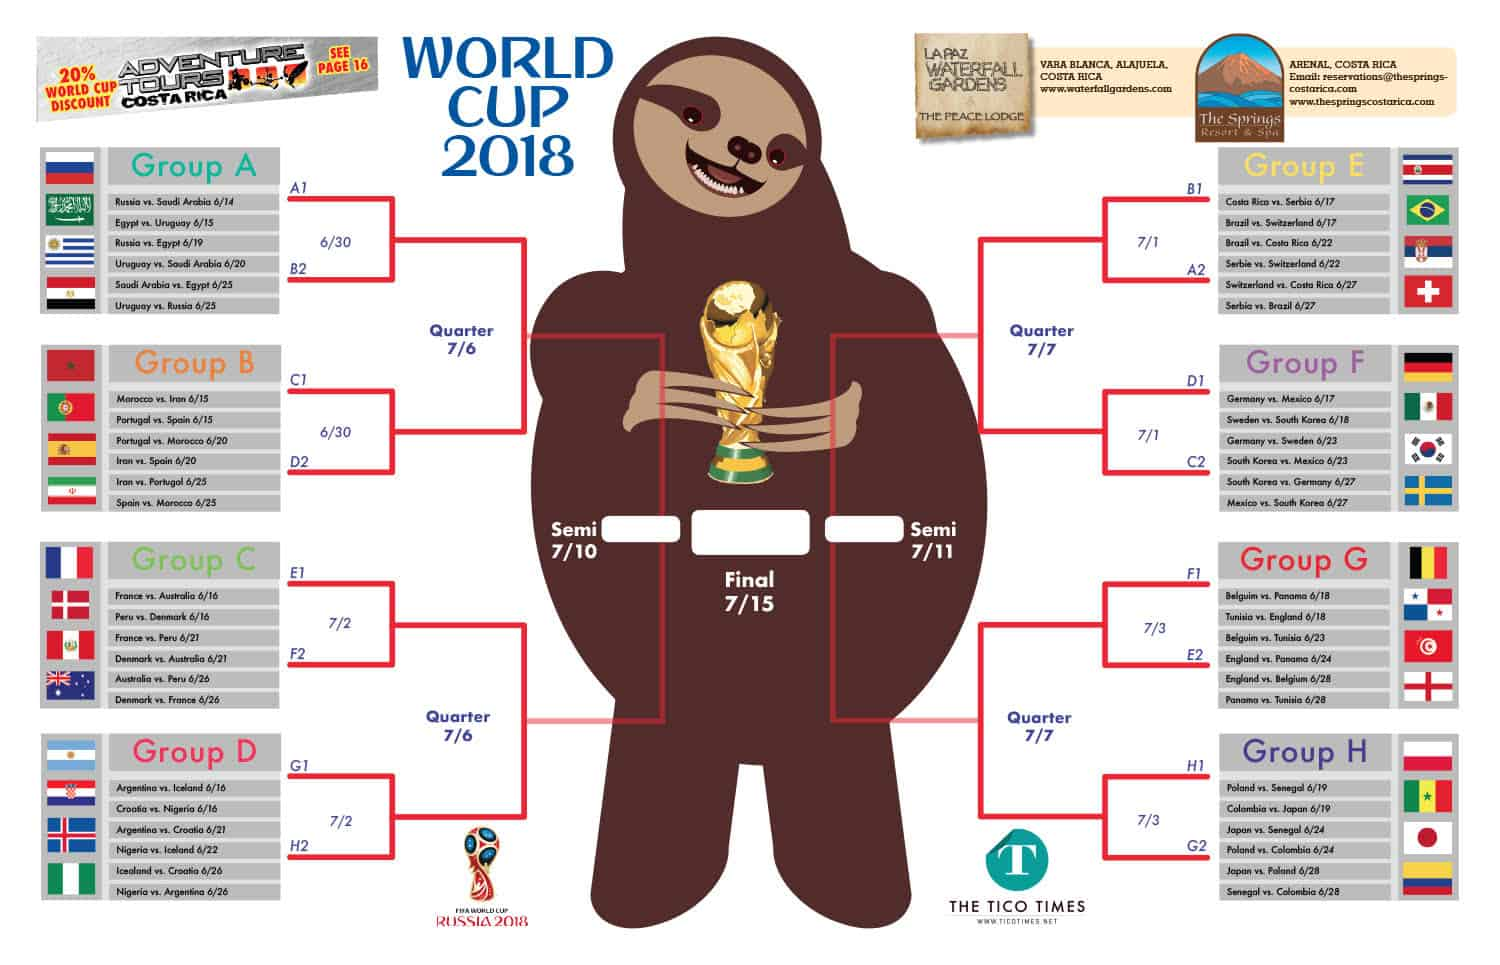 image about World Cup Bracket Printable called Down load printable Sloth Kong Planet Cup brackets The Tico